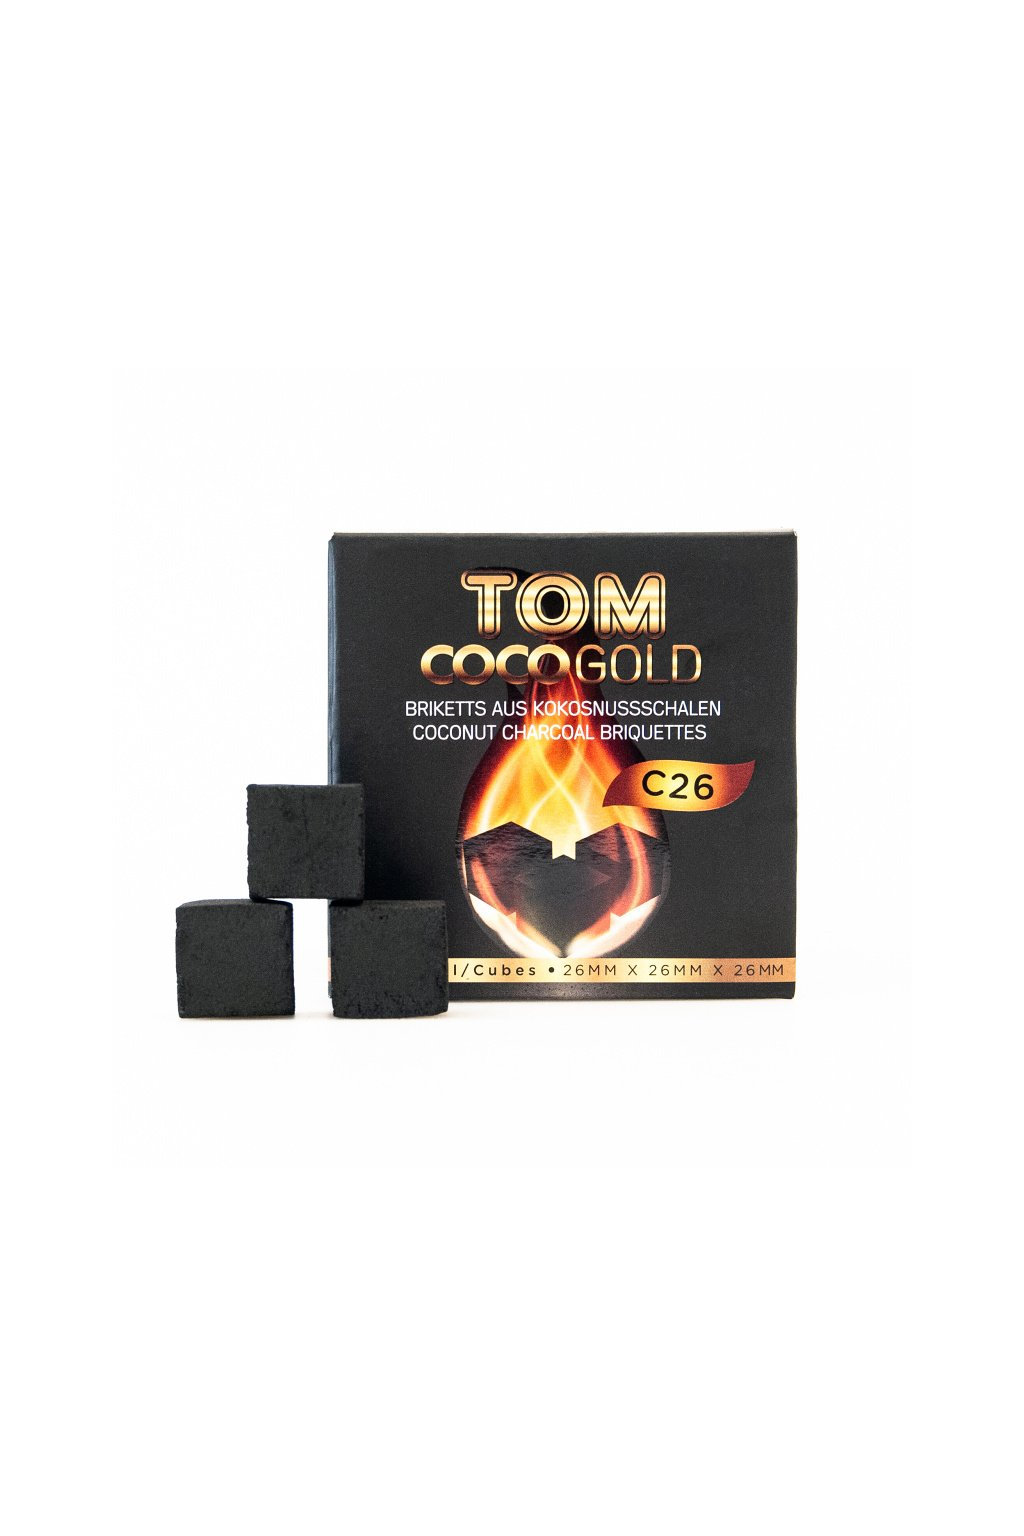 Tom Coco Charcoal 1 kg C26 Gold